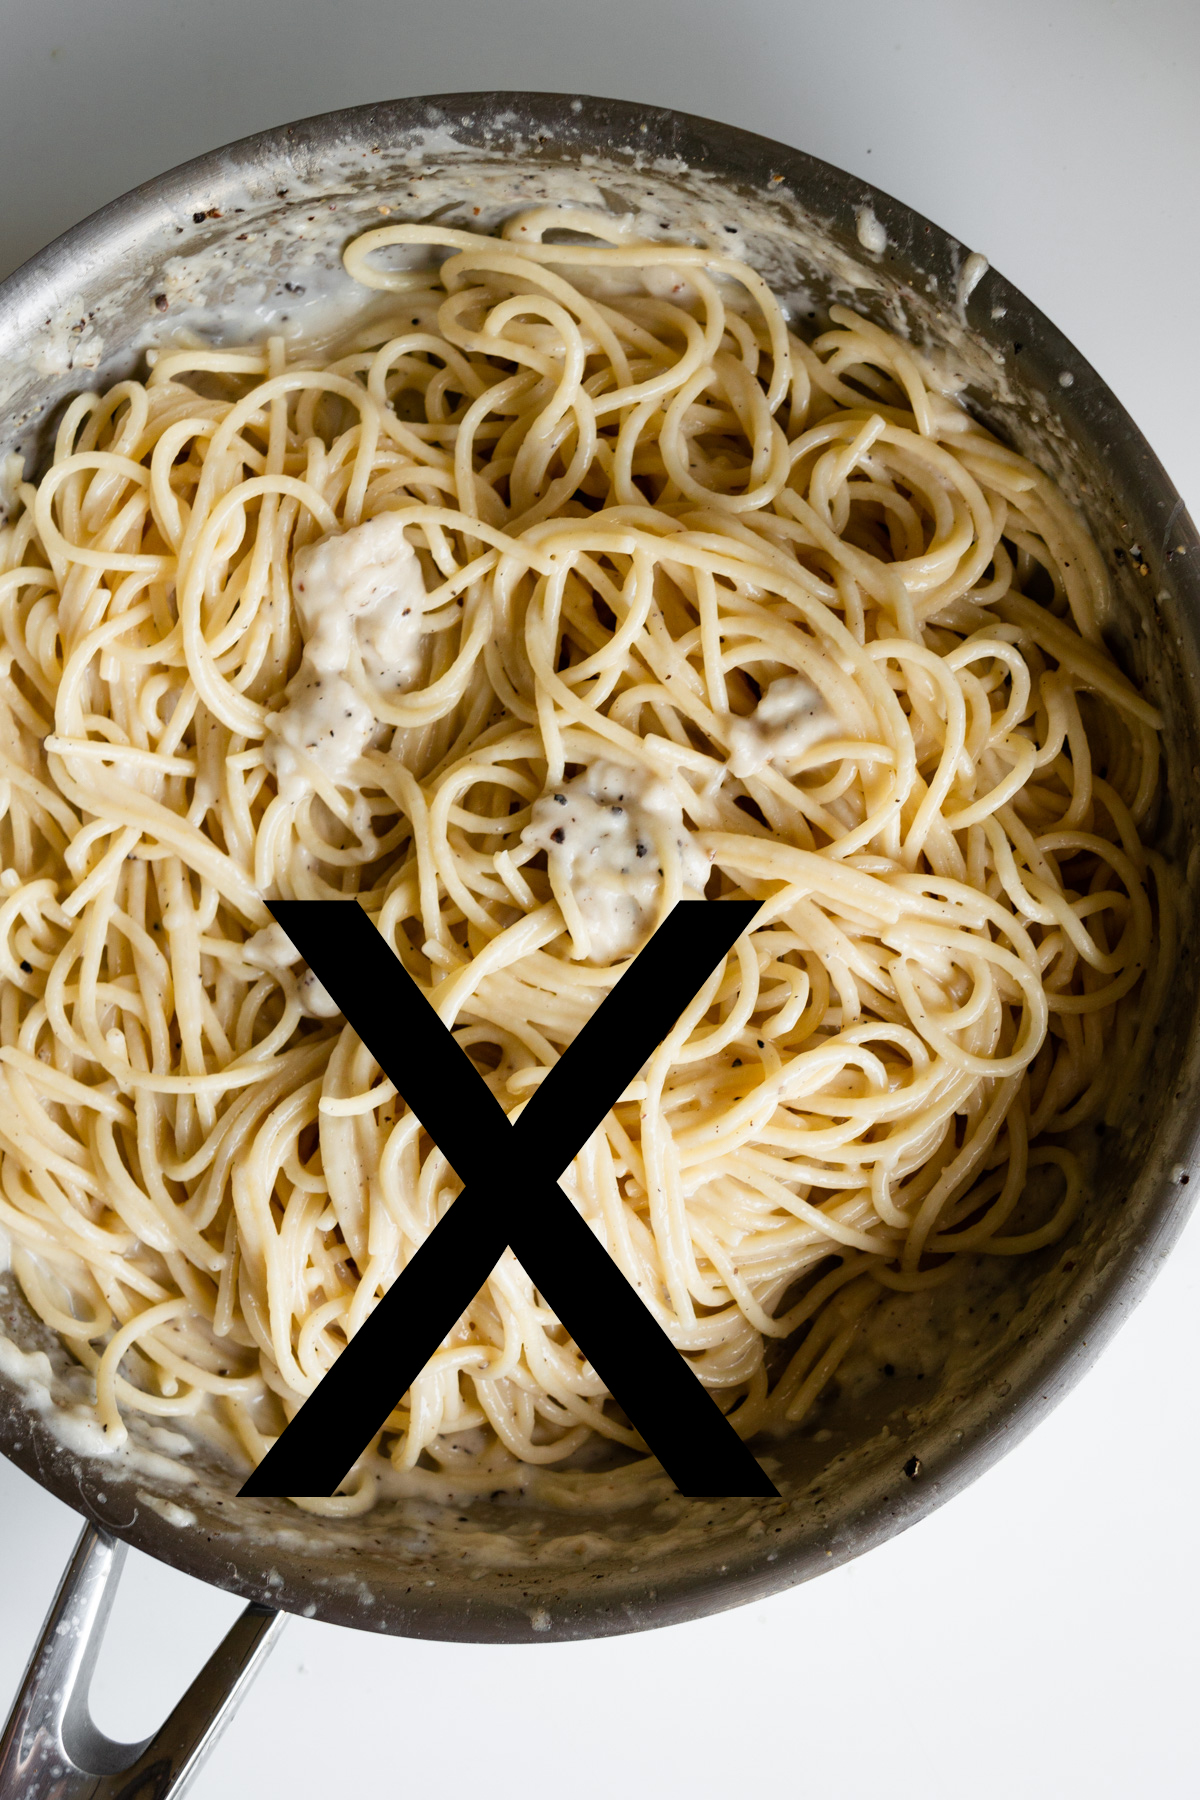 Pan of cacio e pepe with cheese that has clumped/curdled